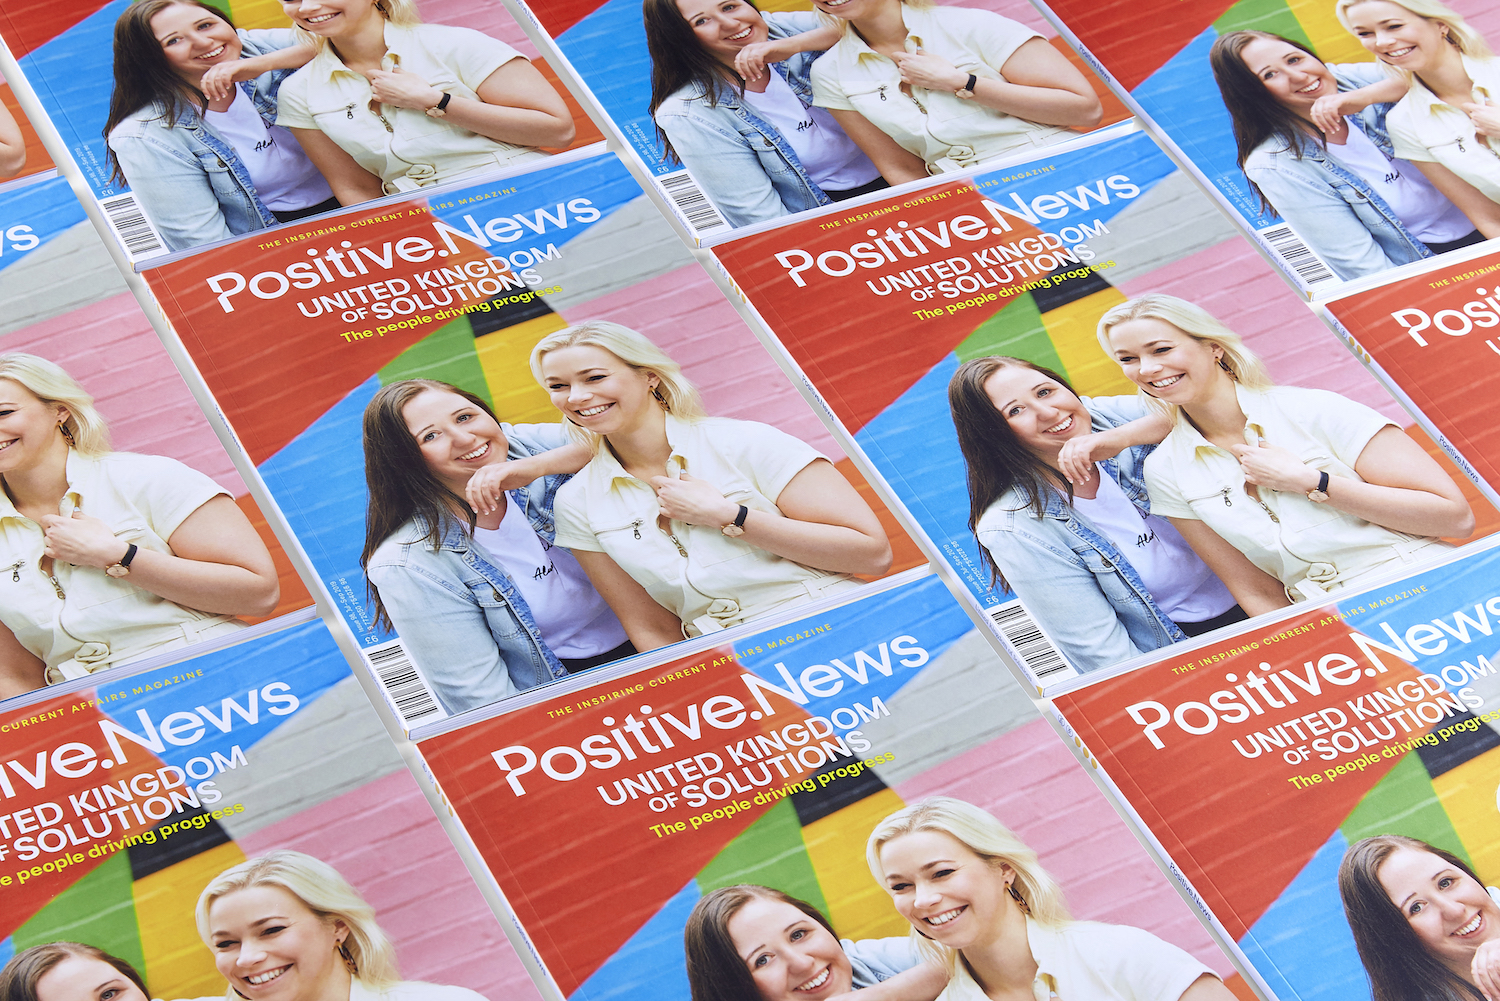 A love song for the UK: latest issue of Positive News magazine celebrates what the UK can be proud of